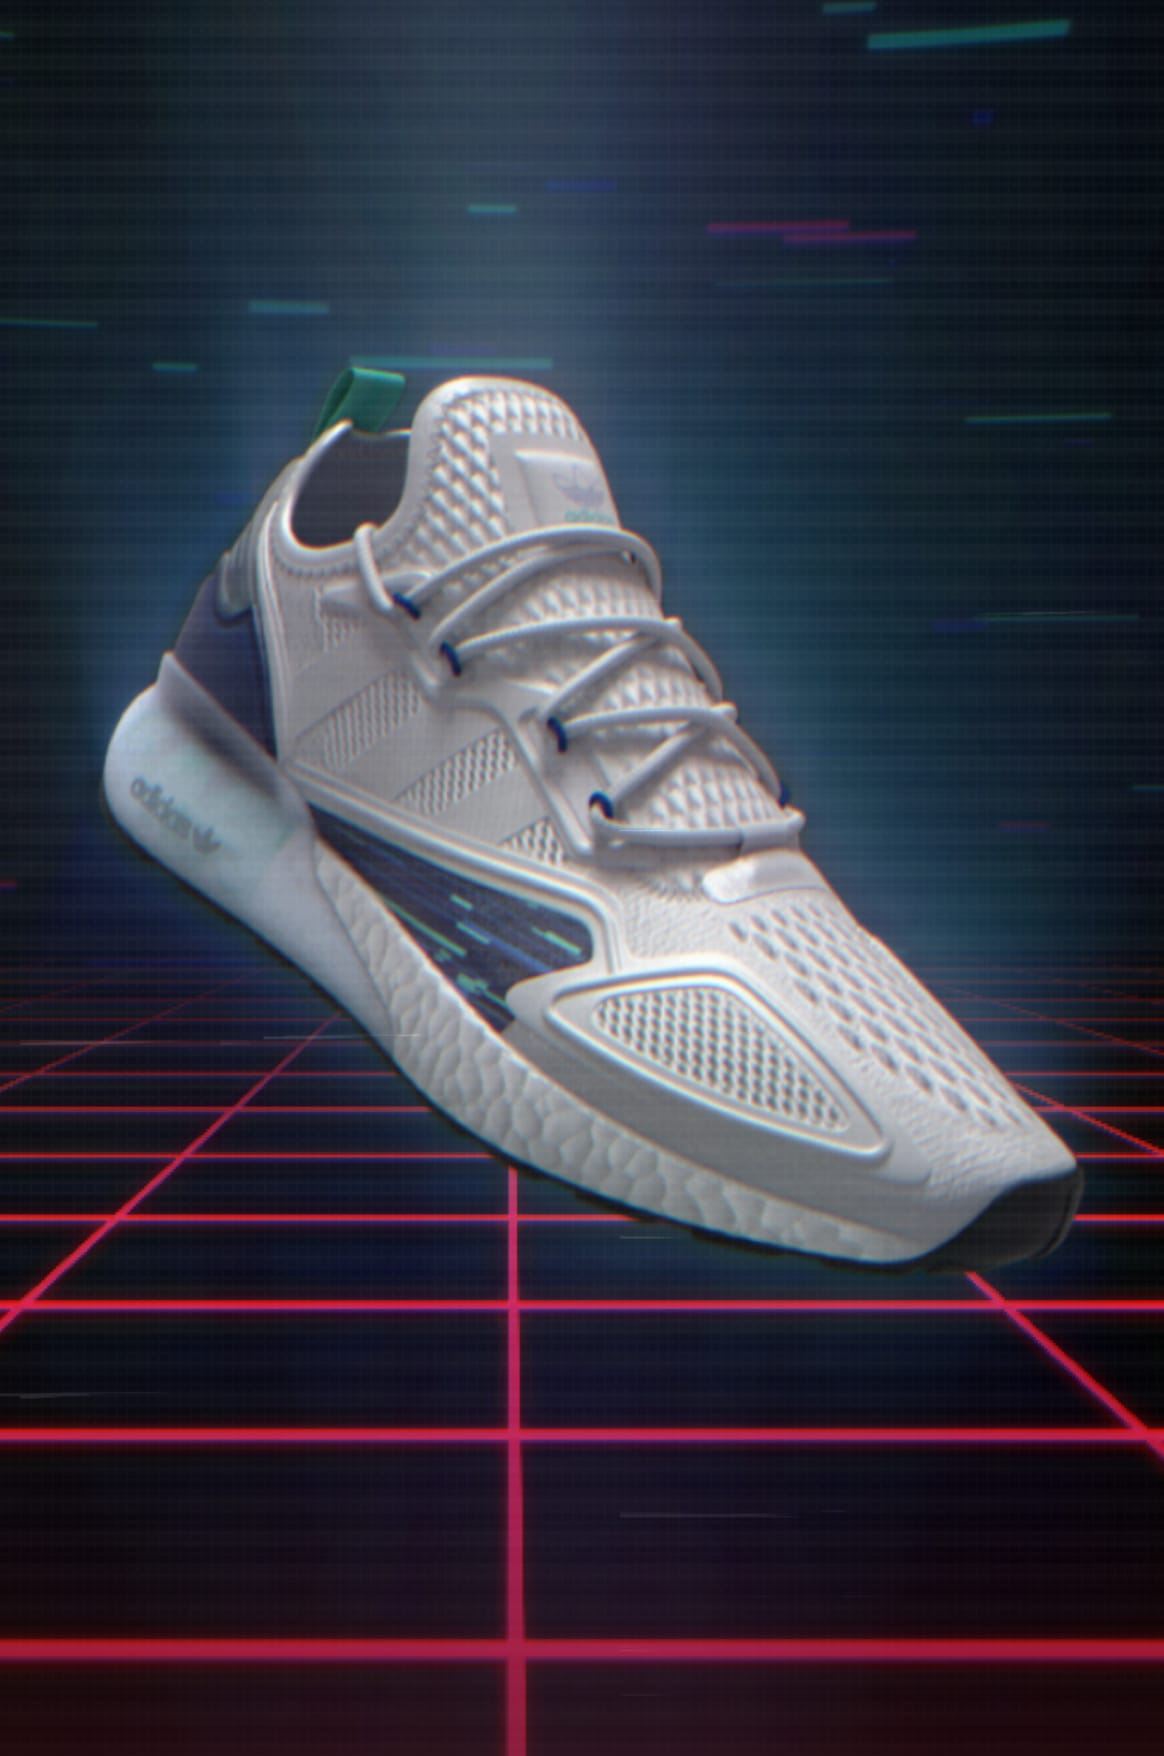 adidas ZX 2K Boost in video-game setting.